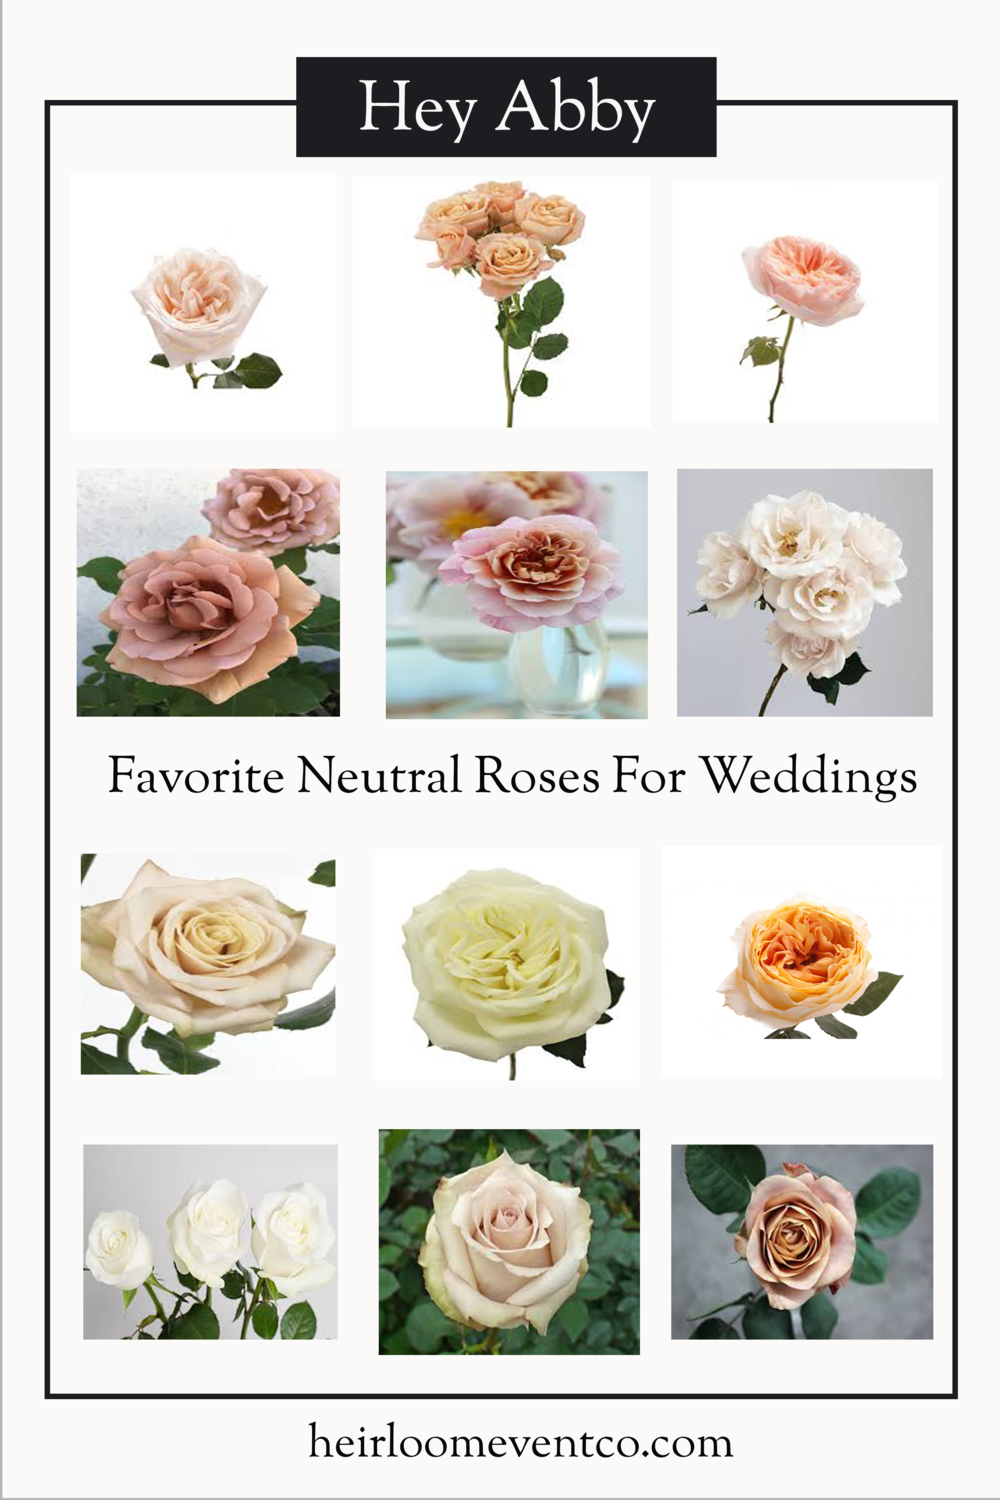 Heirloom Event Co. | Favorite Neutral Wedding Roses